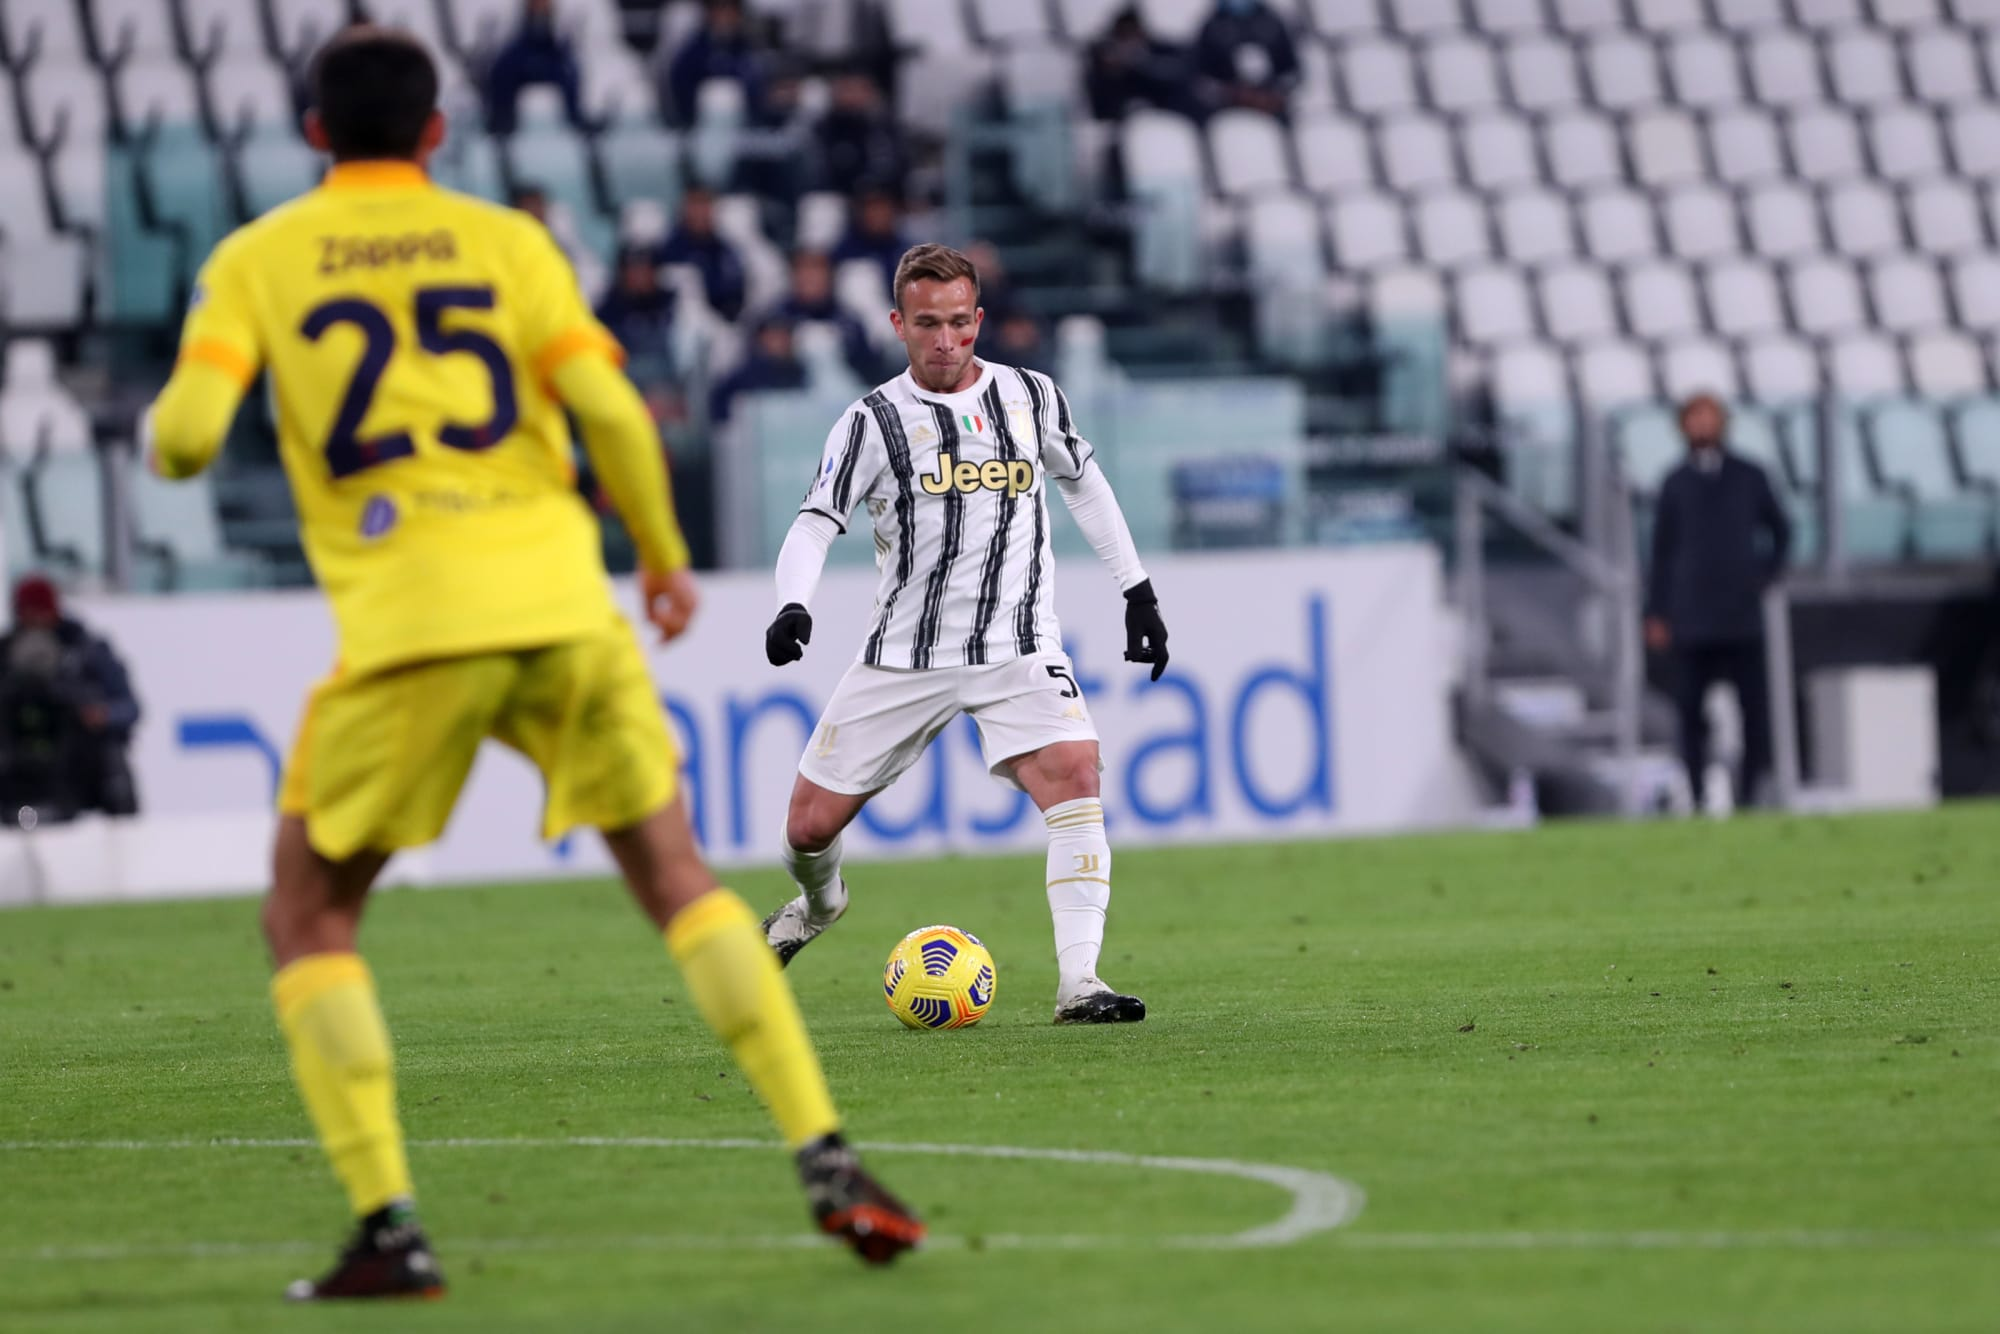 Juventus: 3 takeaways from a professional win over Cagliari